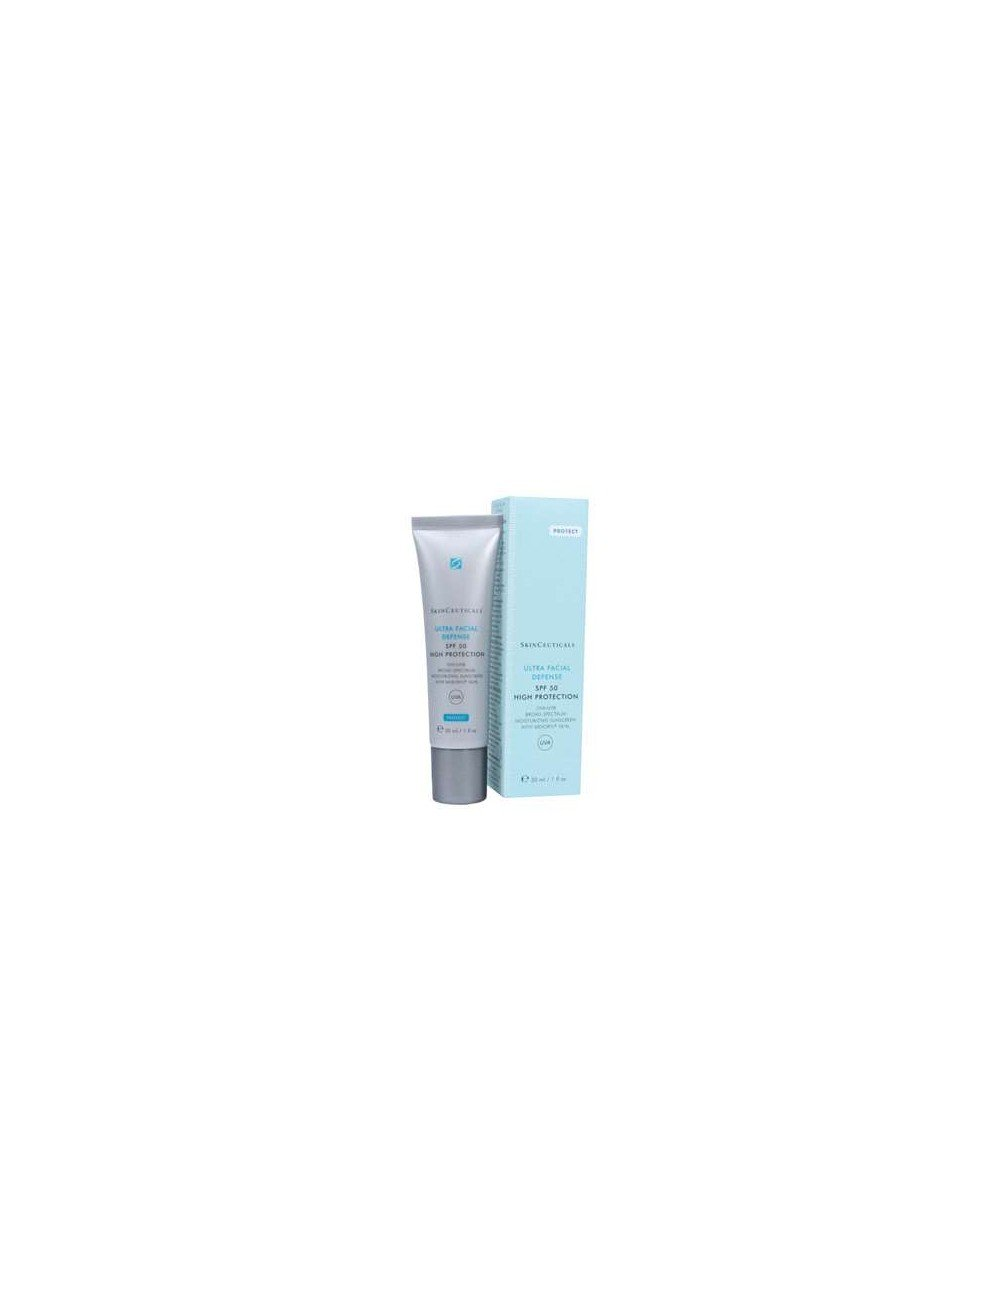 SKINCEUTICALS ULTRA FACIAL DEFENSE...